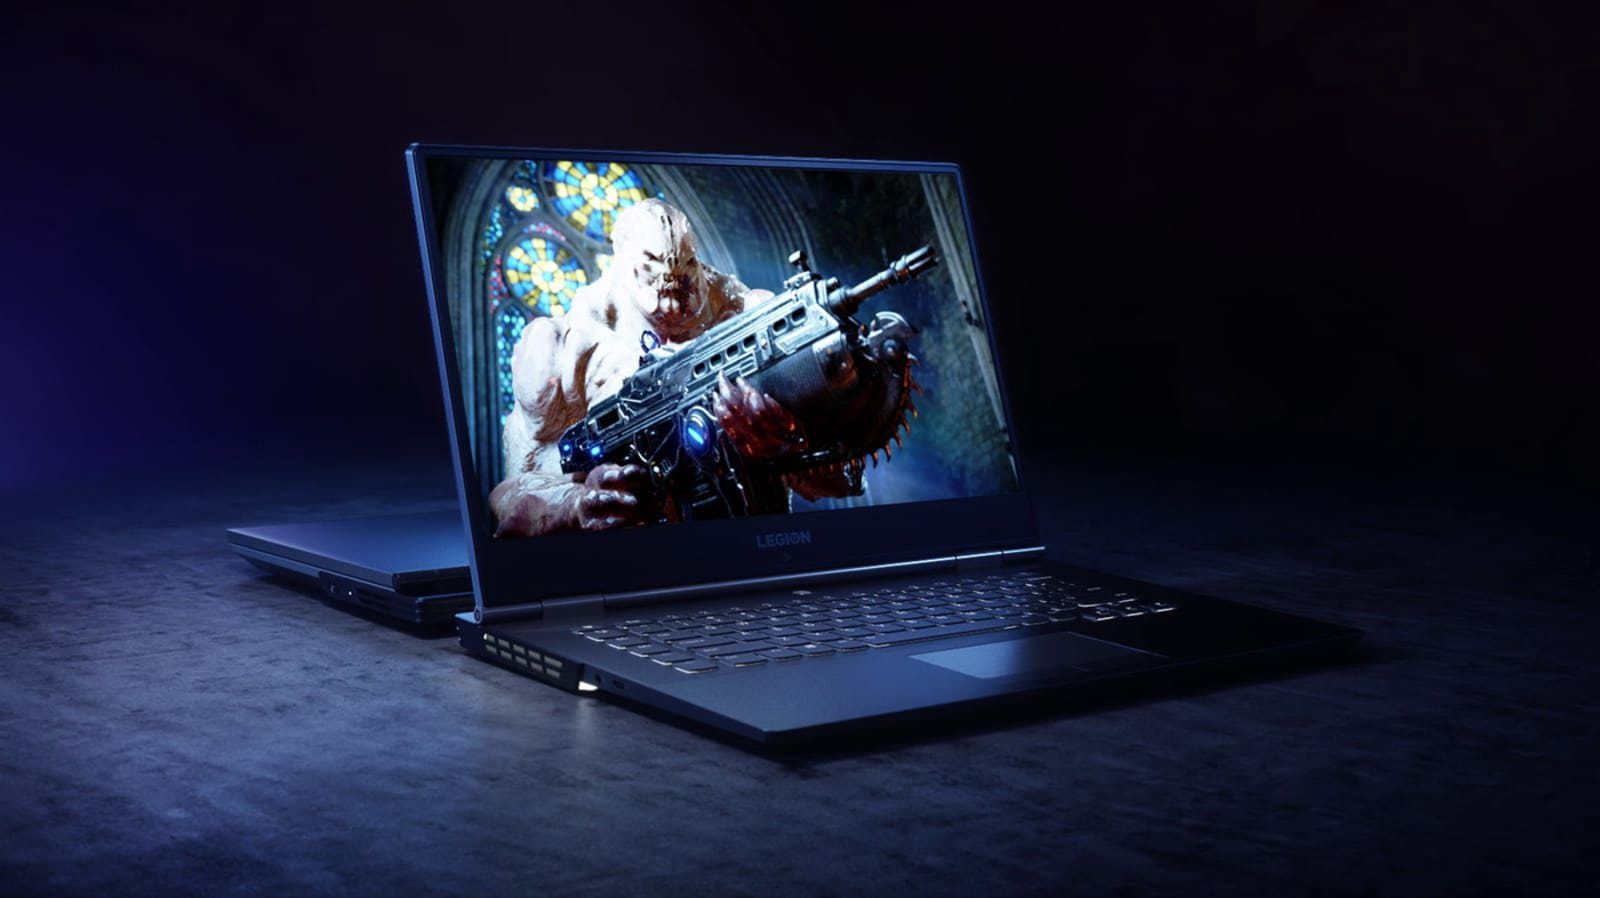 Lenovo's Legion gaming laptops get next-gen NVIDIA RTX GPU boost